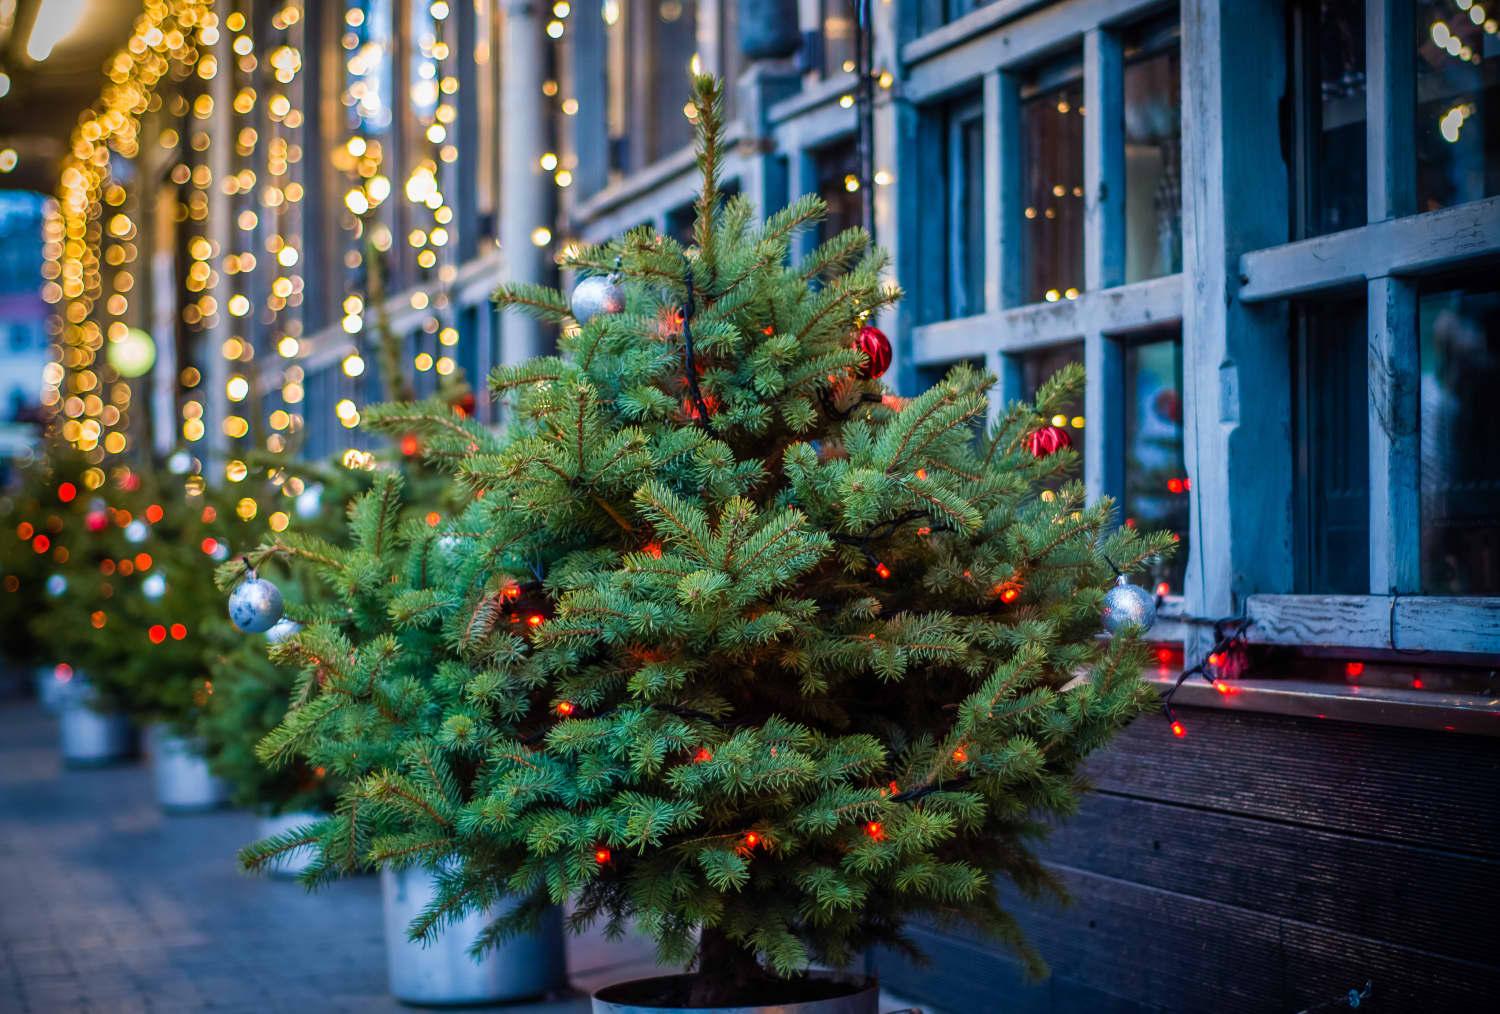 Mini Christmas Trees Are Making a Comeback This Year